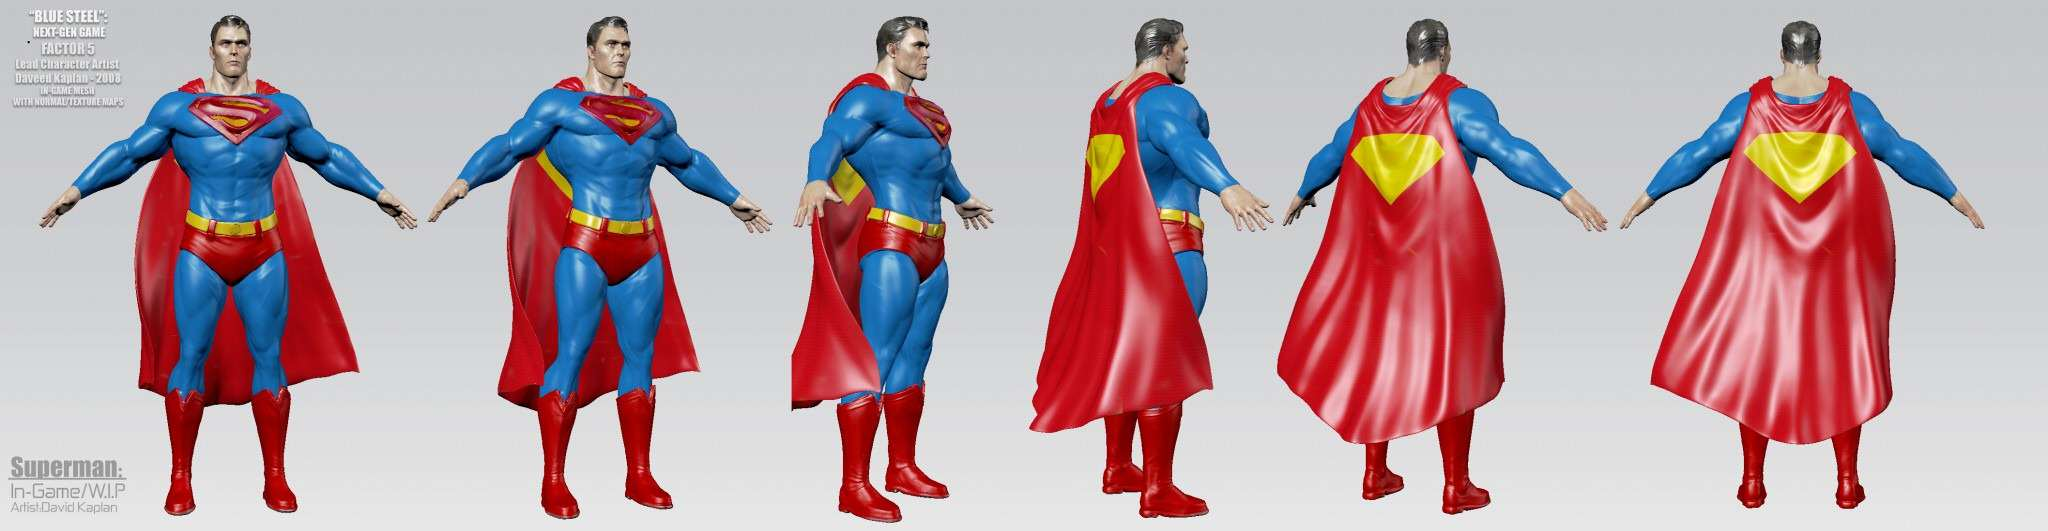 This Cancelled Open World Superman Game Actually Looked Amazing 591dd143a81b6100b6d89488cfa92ec0e51719eb